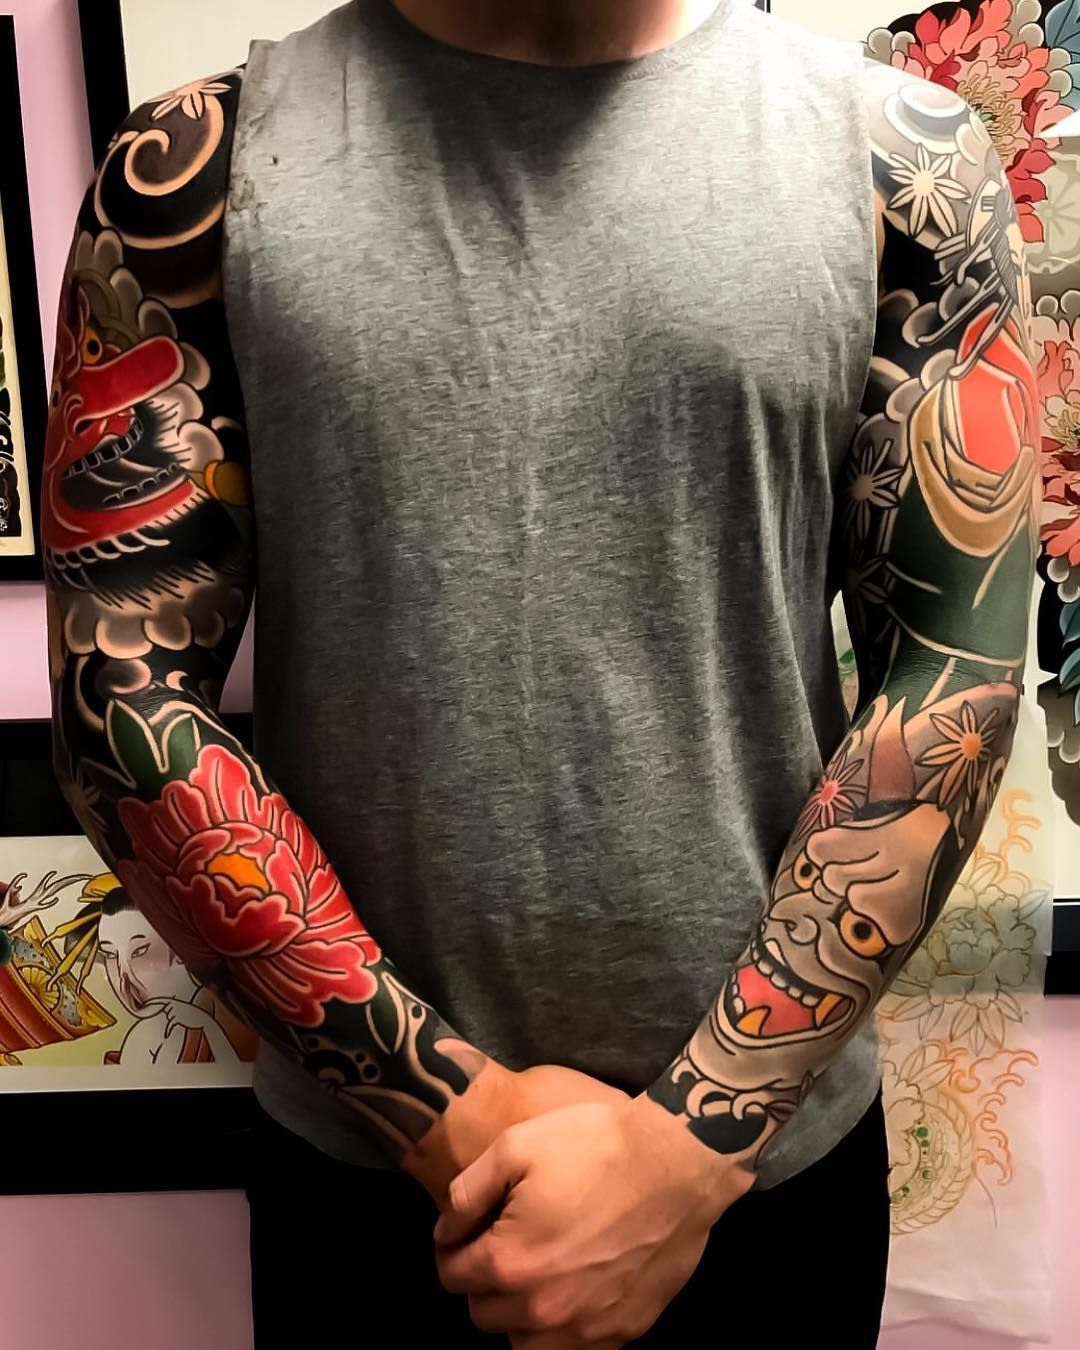 e2a482feb Japanese tattoo sleeves by @mitchxlovetattoo. #japaneseink #japanesetattoo  #irezumi #tebori #colortattoo #colorfultattoo #cooltattoo #largetattoo  #armtattoo ...